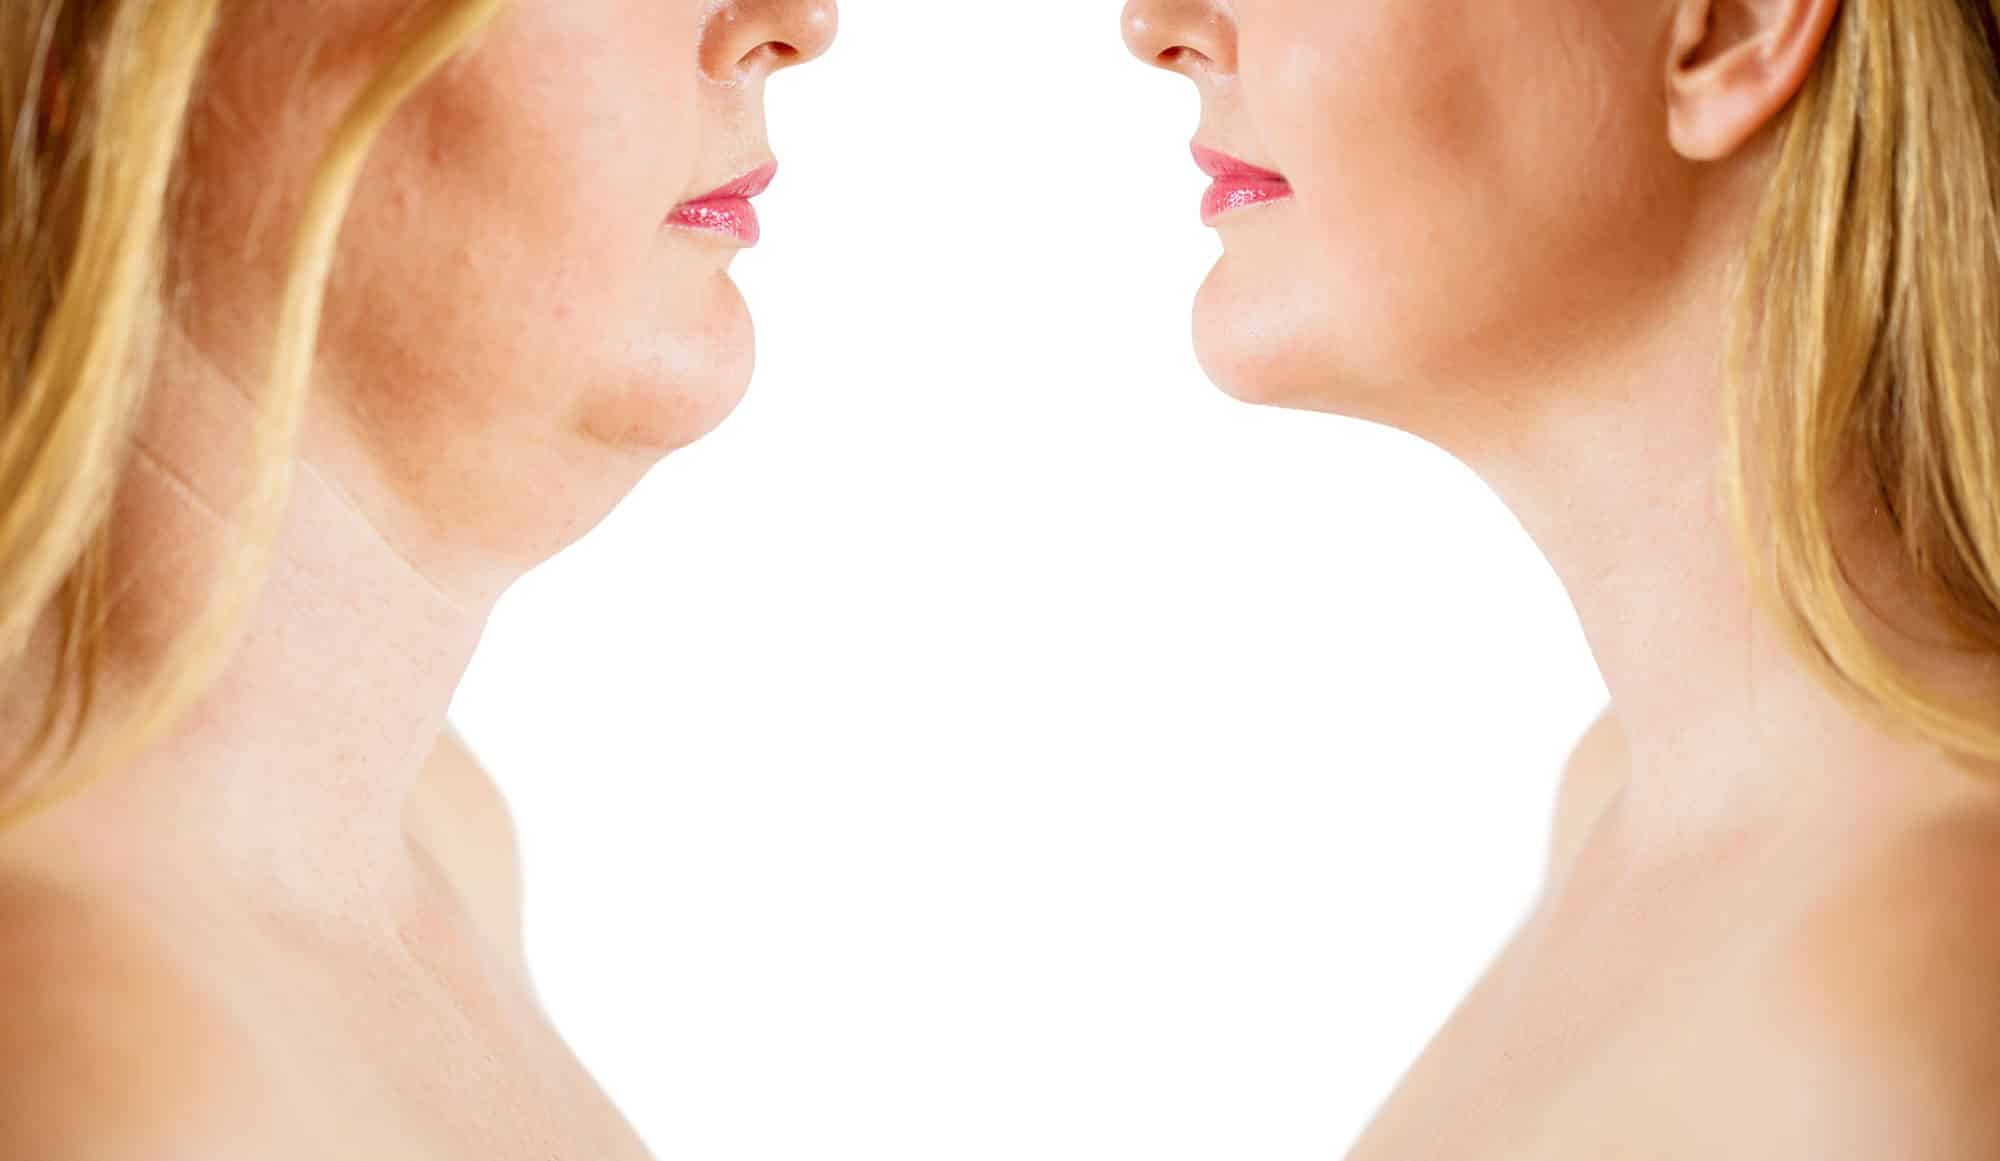 How to Get Rid of Double Chin & Chin Fat